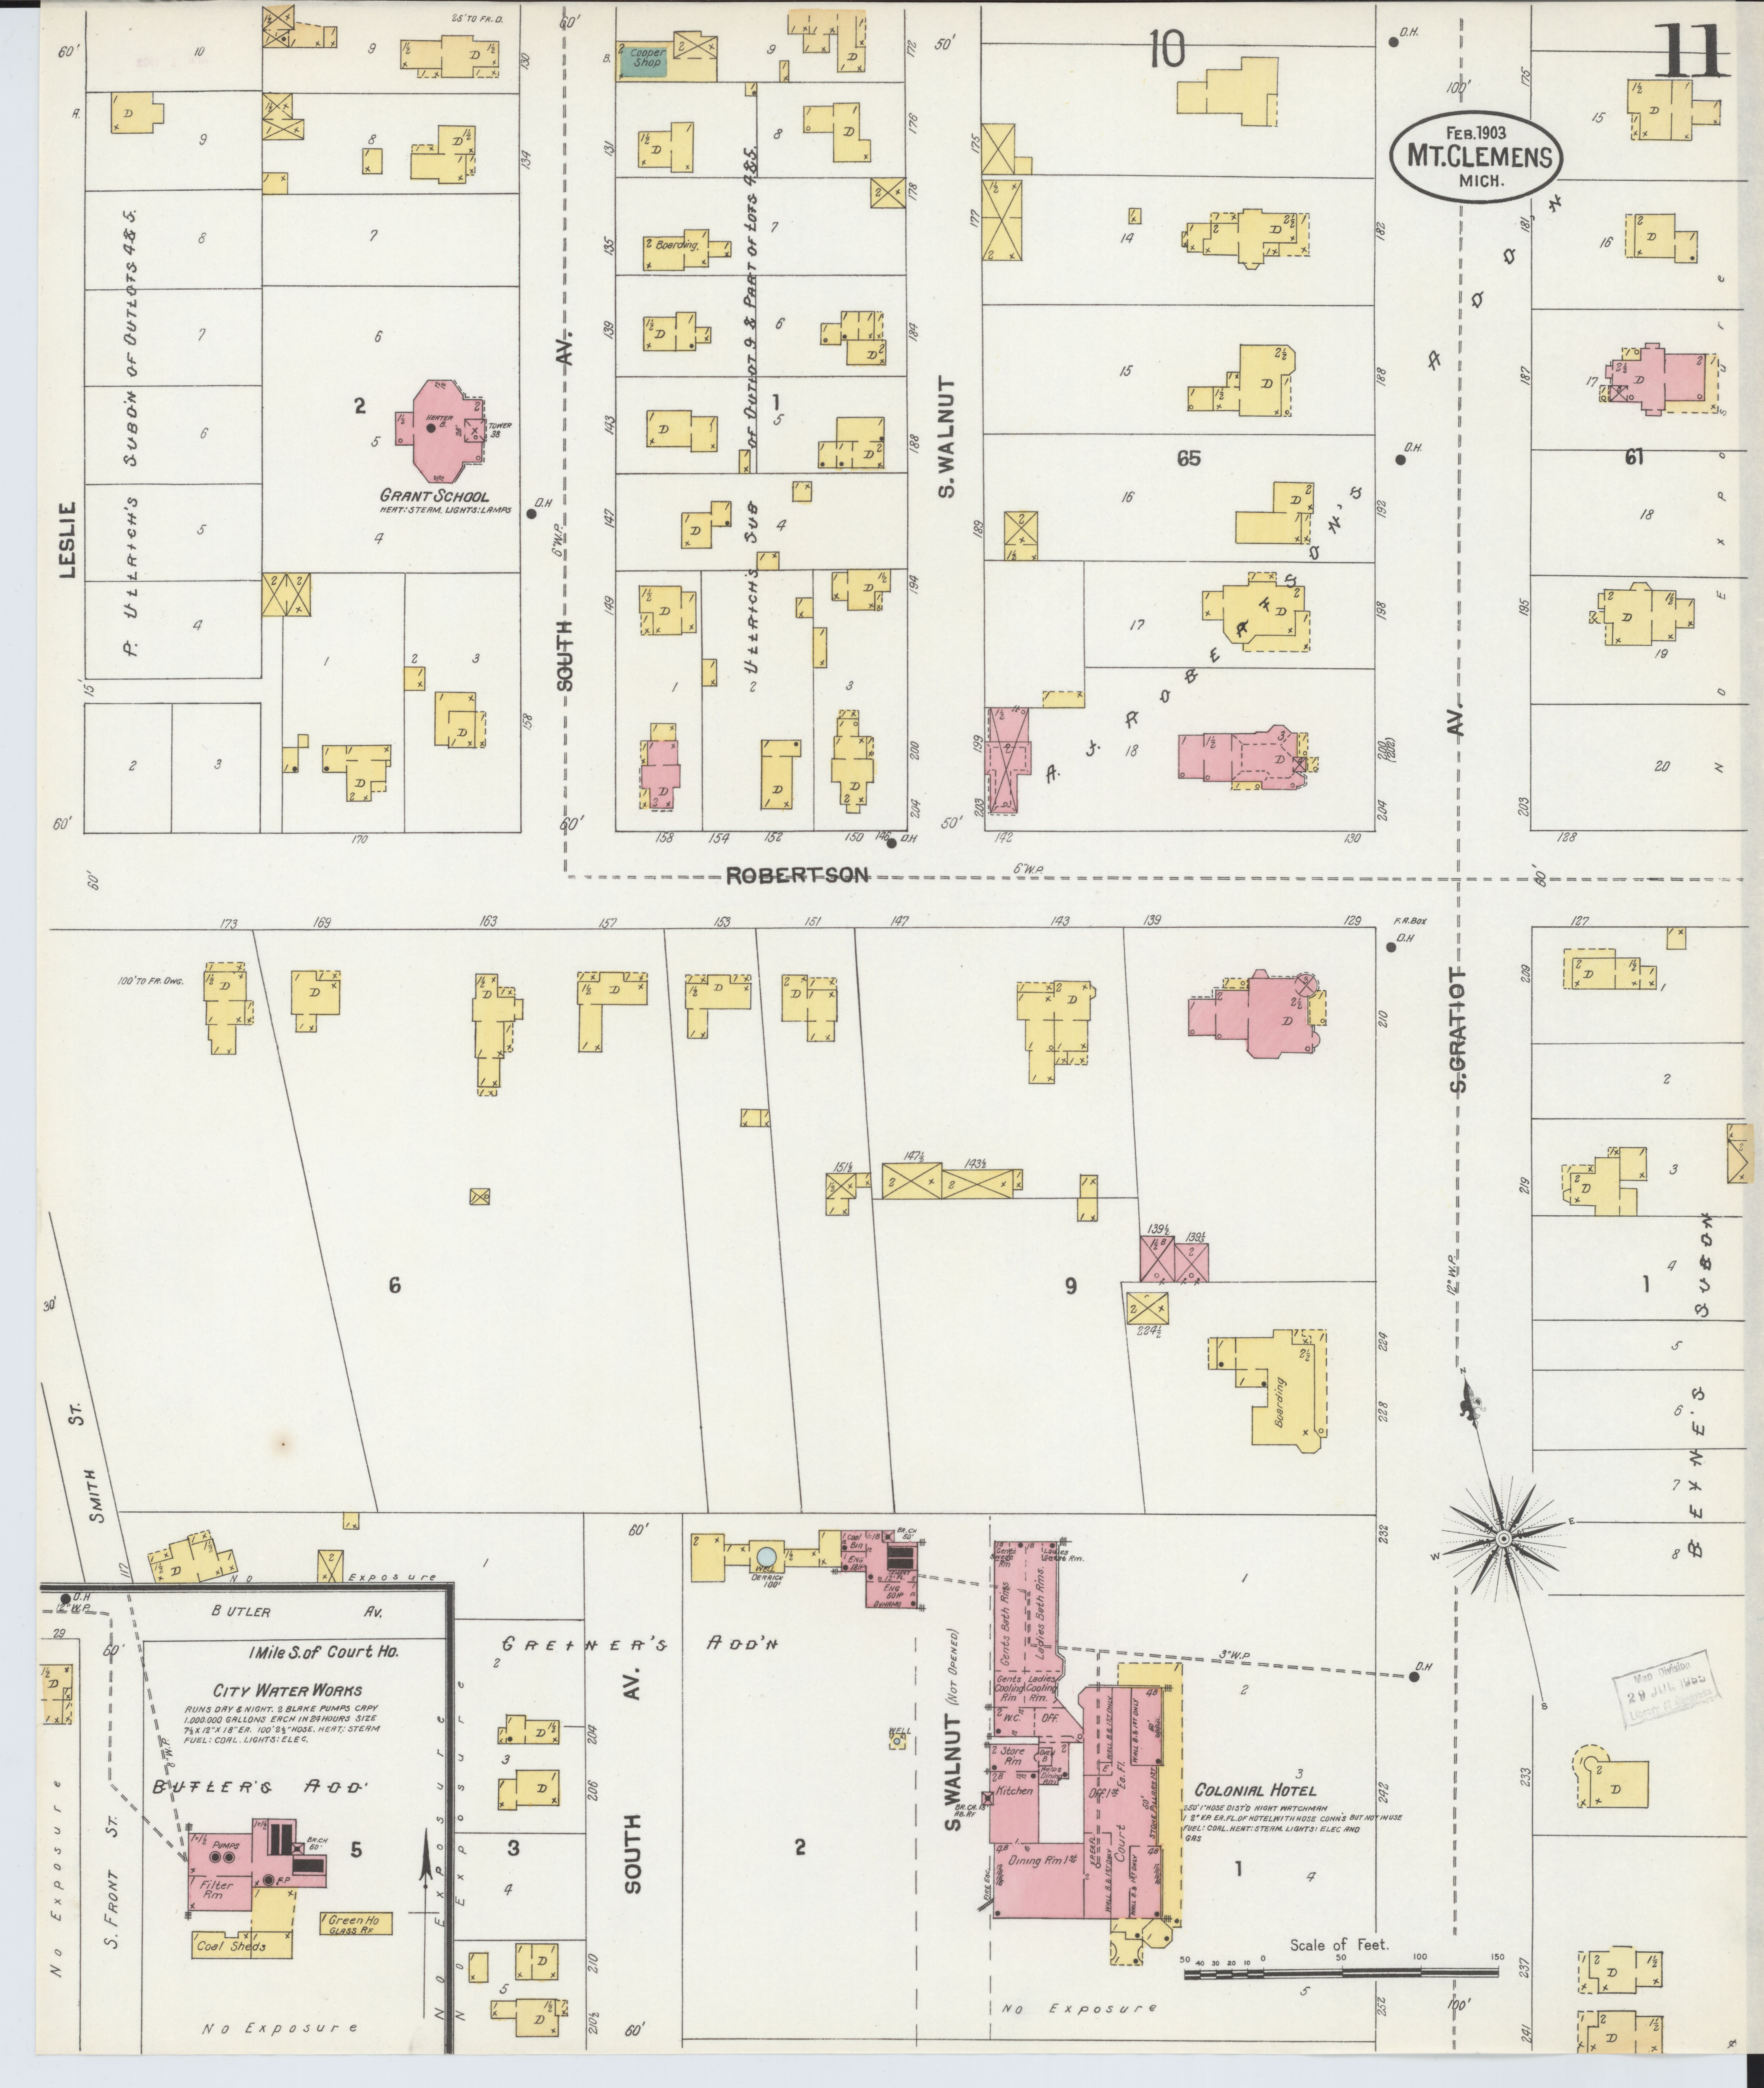 File:Sanborn Fire Insurance Map from Mount Cle, Macomb ... on royal oak, sterling heights, michigan map, oakland county, marlette map, trenton county map, st. clair county, rockford county map, downtown mt clemens map, central oklahoma county map, oklahoma county county map, ypsilanti county map, monticello county map, oakland county map, mackinac county, kent county, port huron, wayne county map, lapeer county map, maricopa county, chillicothe county map, washtenaw county, detroit area map, leelanau county, early county map, joliet county map, washtenaw county map, livingston county, monroe county, wayne county, grand rapids county map, red wing county map, metro detroit, livingston county map, mount clemens, garden city,